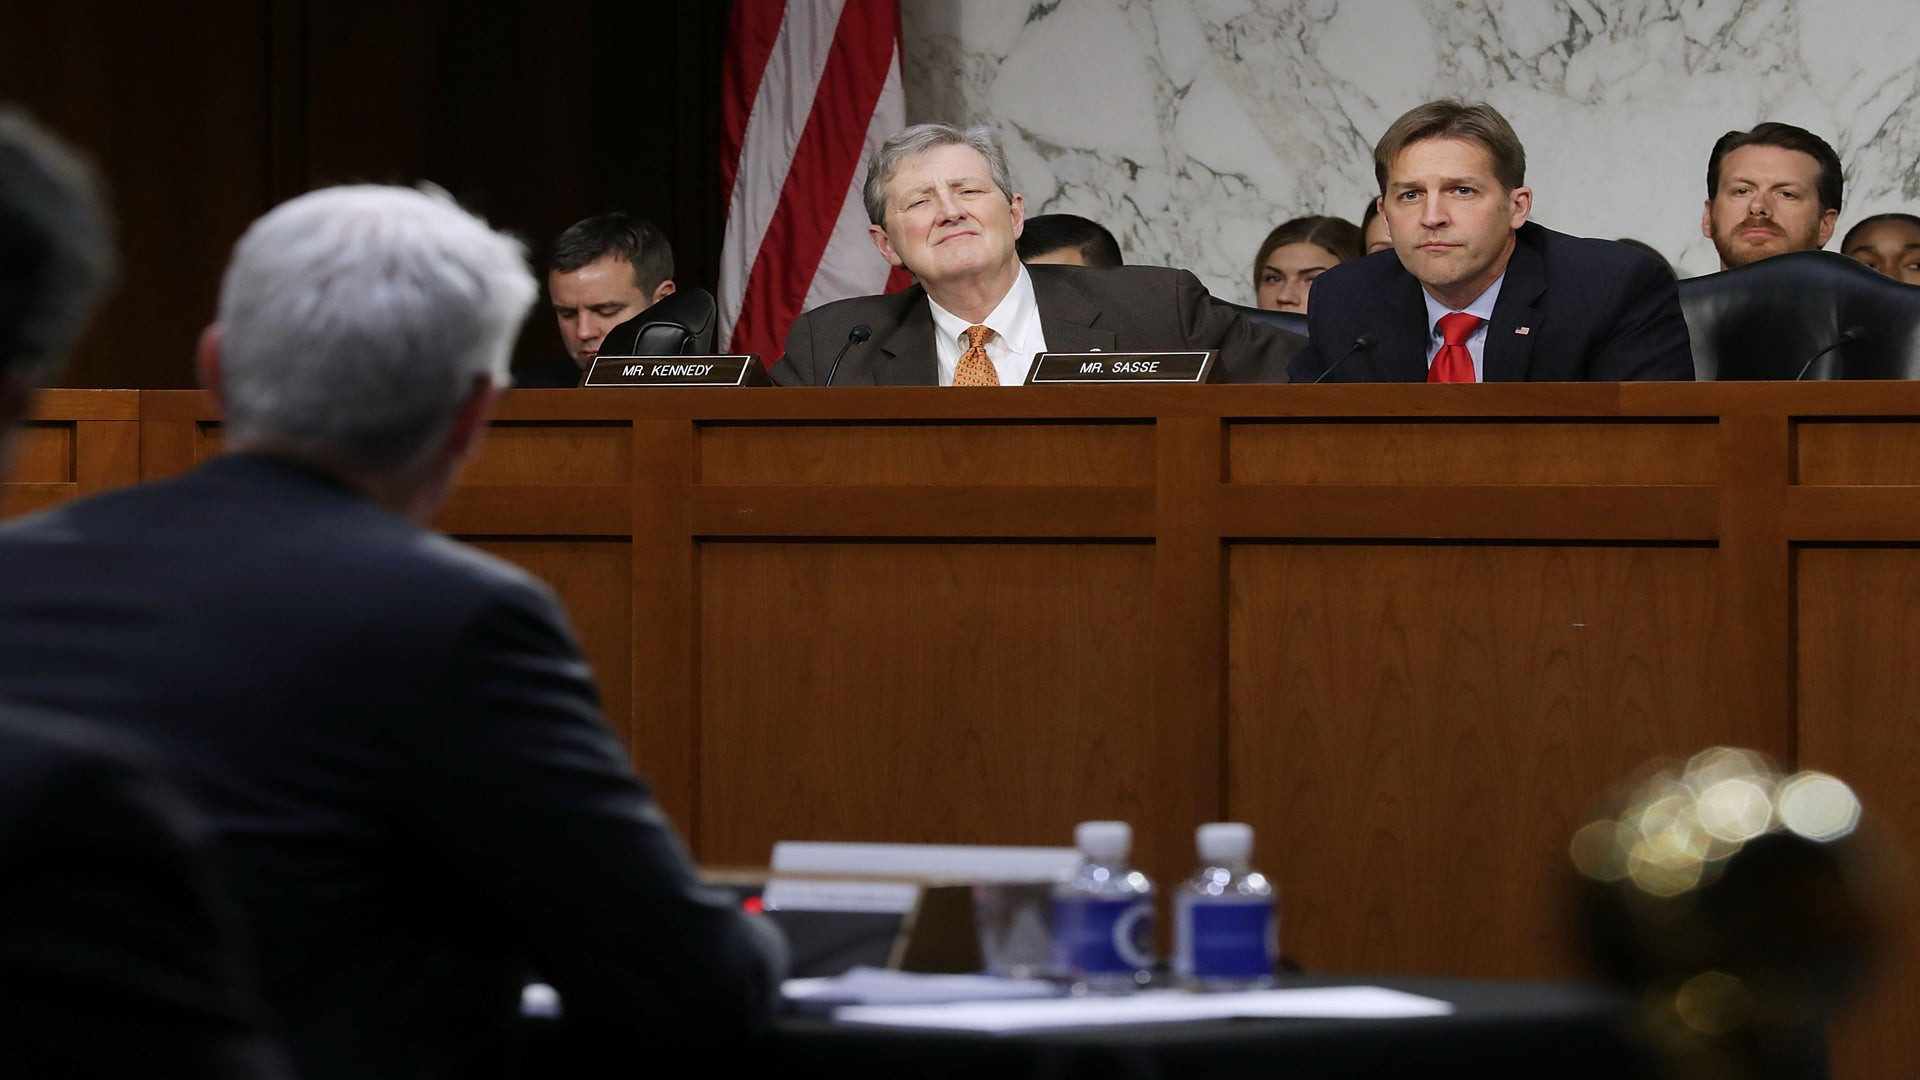 'We Are Not Going To Go Away.' U.S. Senators Rail Against Facebook, Google, Twitter Execs